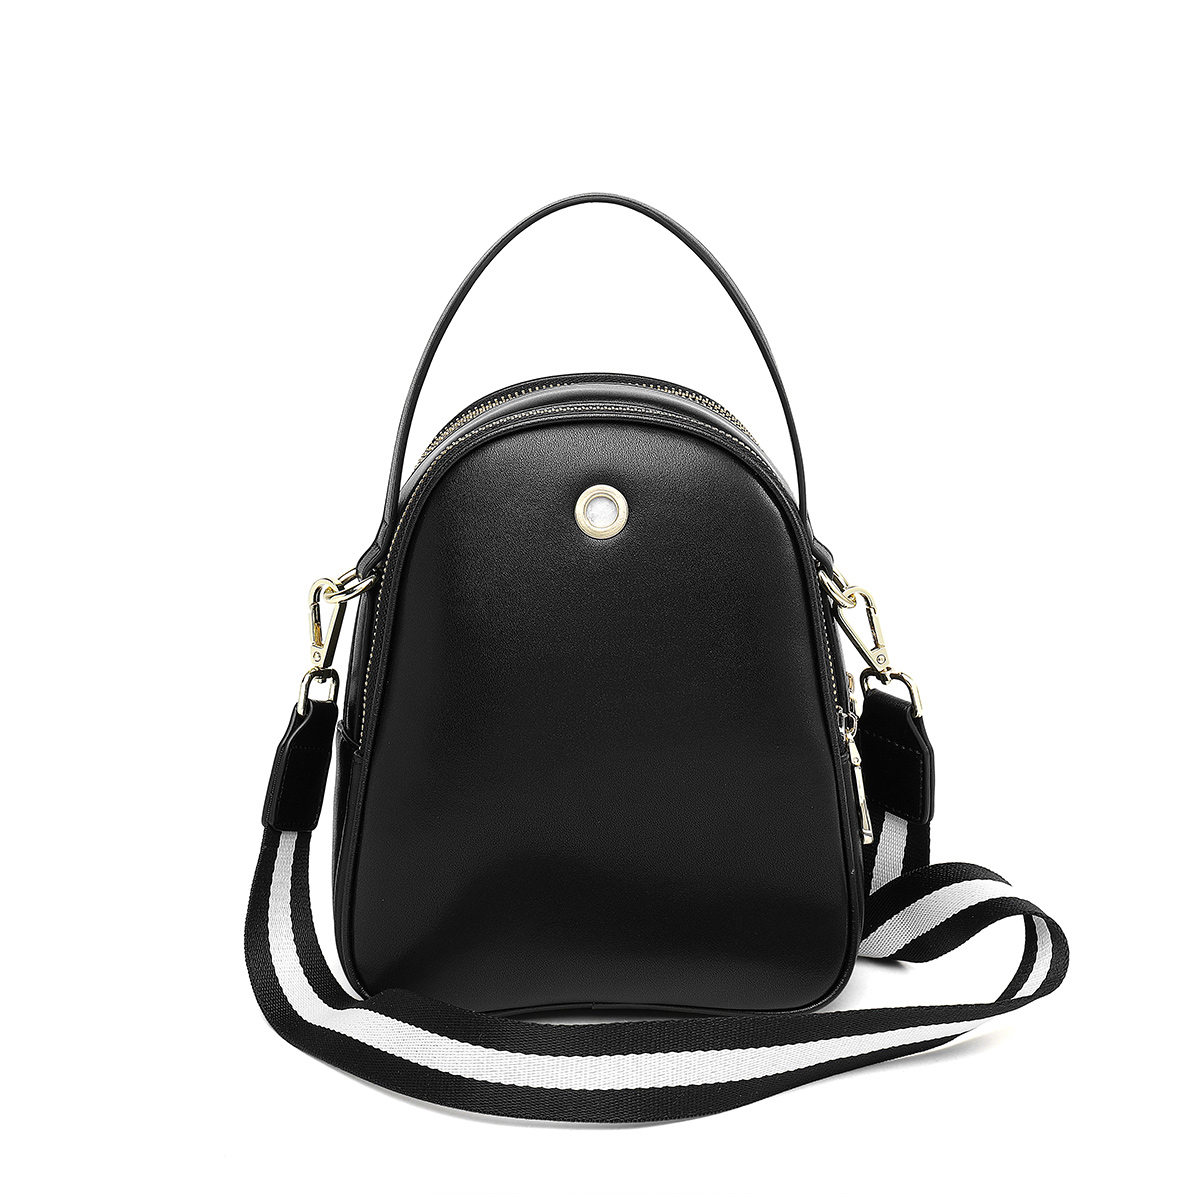 4 color hot sale womans bag backpack  backpack women  bag  cute  women BM52294 190416 yx4 color hot sale womans bag backpack  backpack women  bag  cute  women BM52294 190416 yx